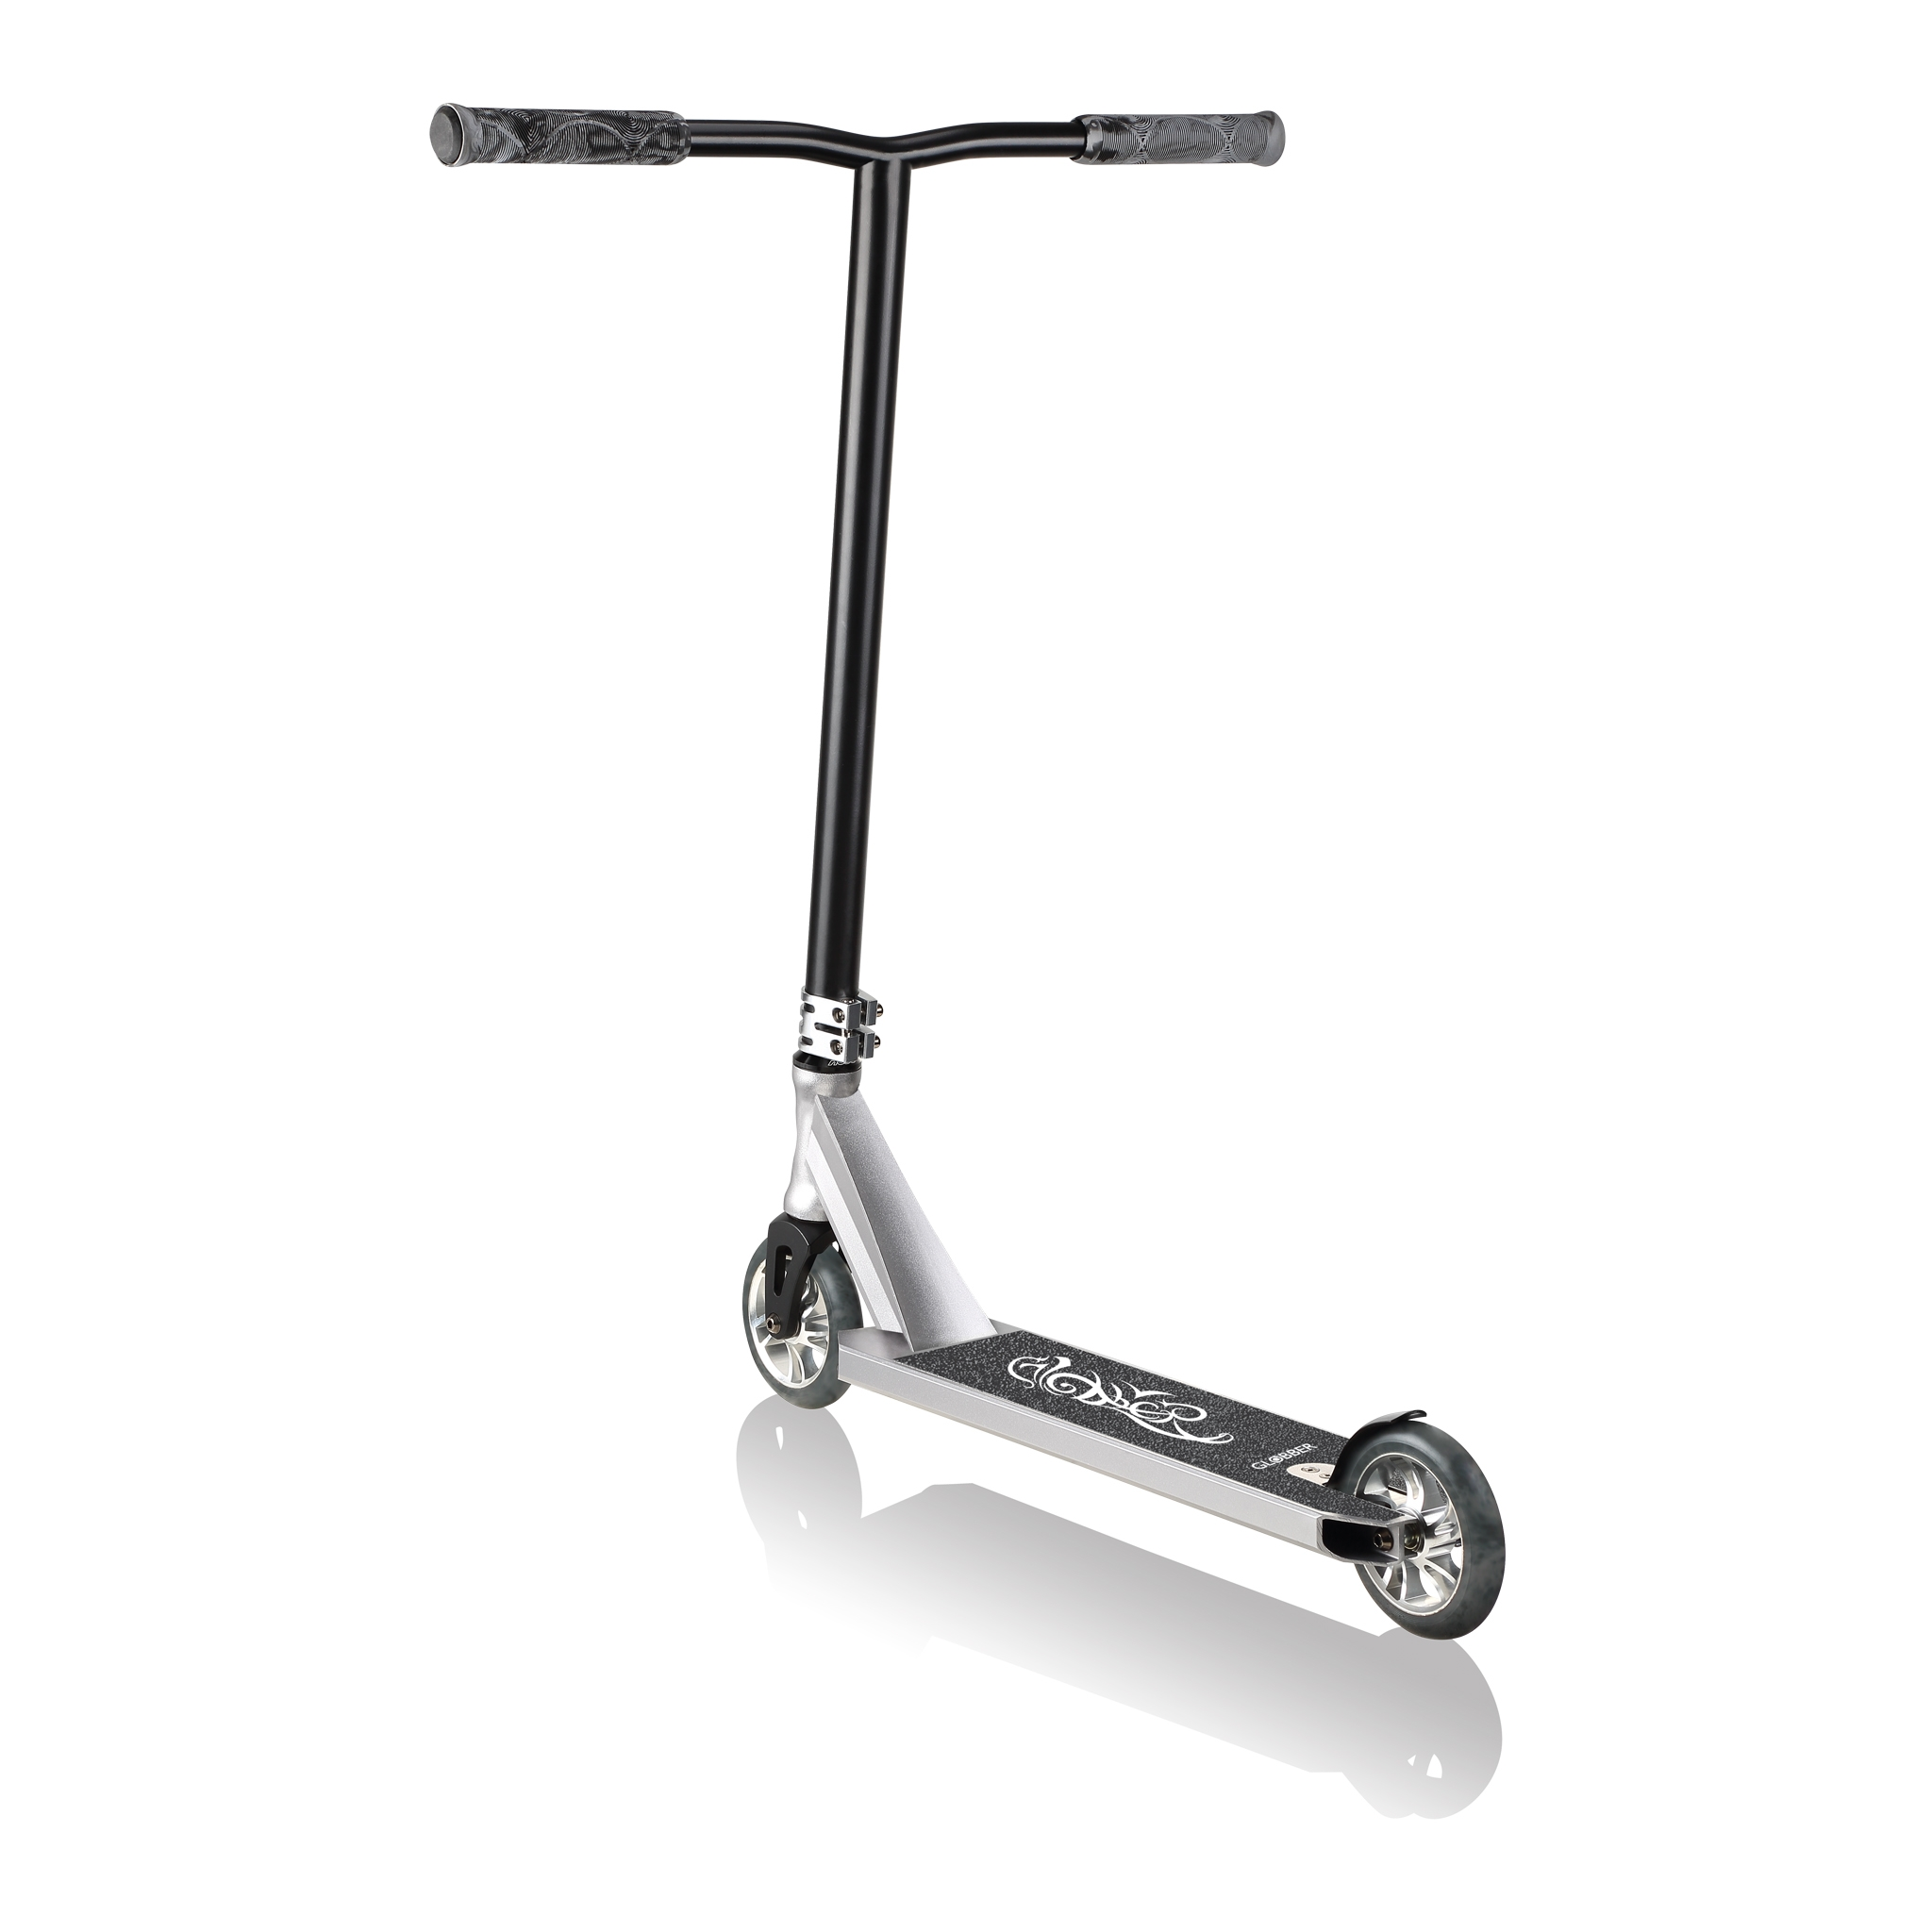 Globber-GS-900-best-stunt-scooter-with-NECO-headset-and-6063-aluminium-anodized-CNC-double-clamp-grey 3